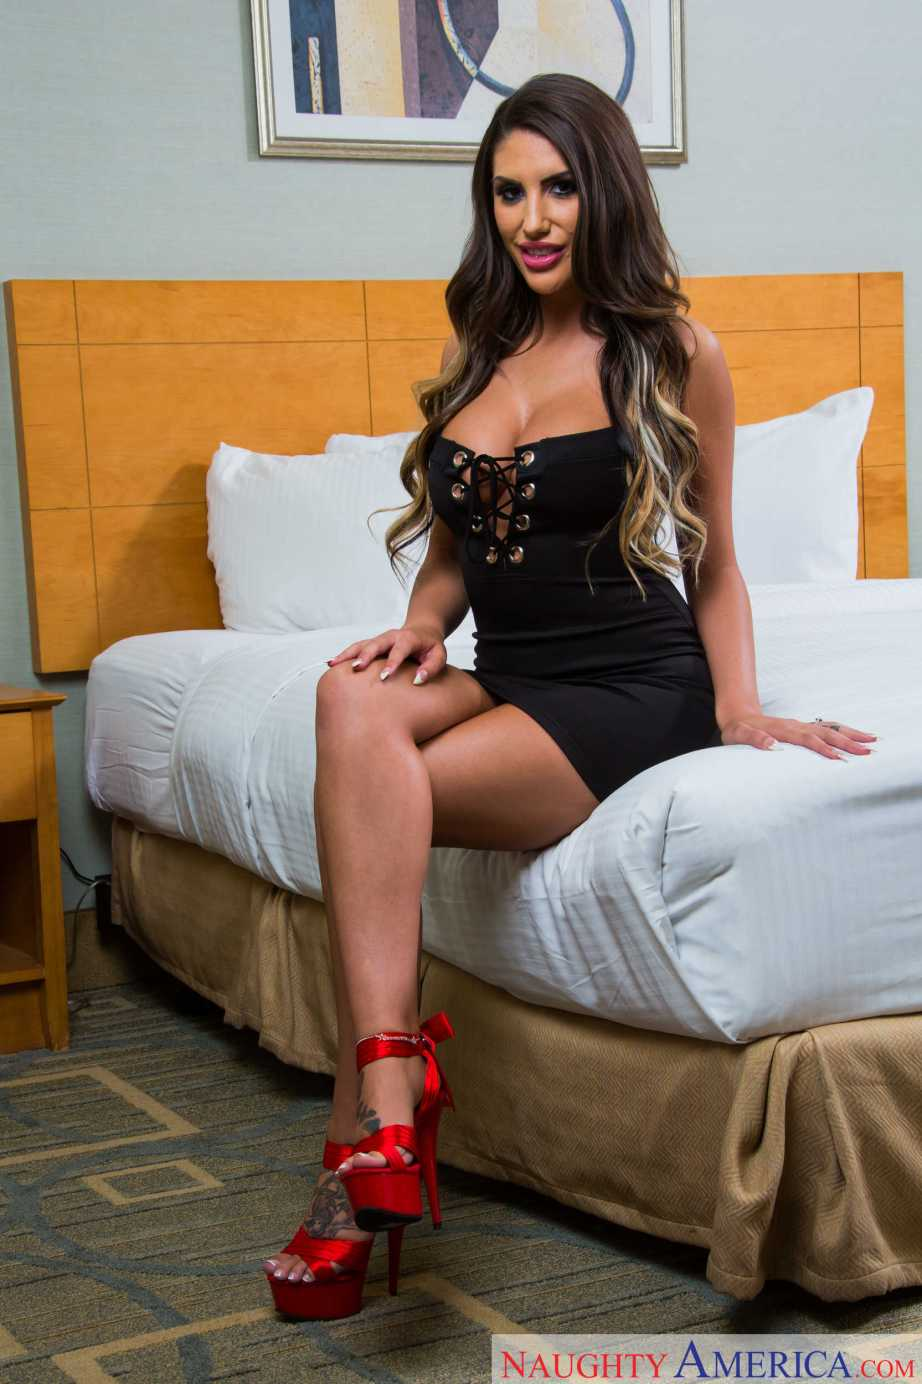 August Ames wca dxz w3 5s 0075 Women Naked Nude Porn for hot